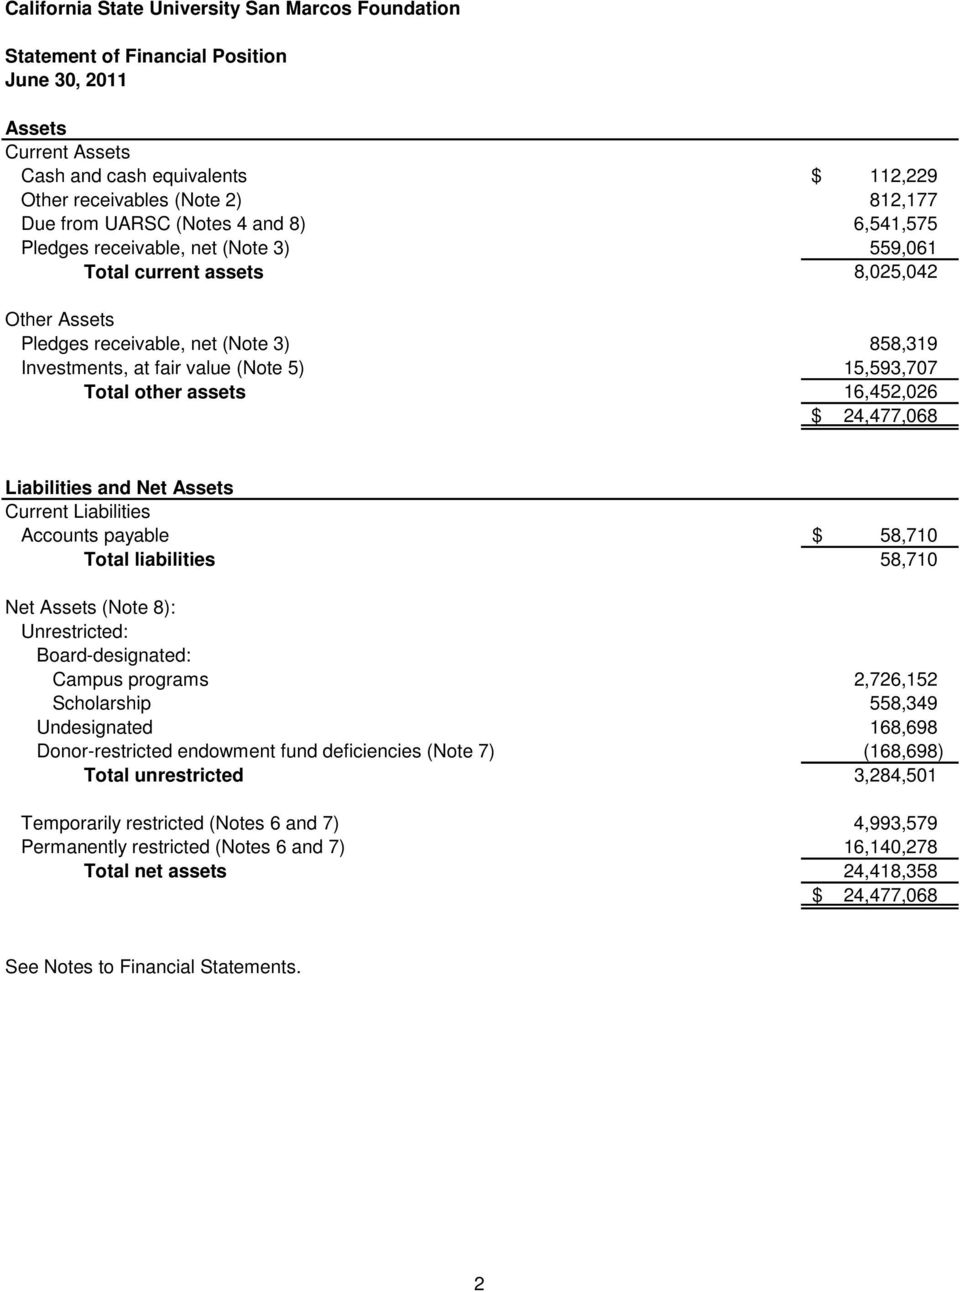 Liabilities and Net Assets Current Liabilities Accounts payable $ 58,710 Total liabilities 58,710 Net Assets (Note 8): Unrestricted: Board-designated: Campus programs 2,726,152 Scholarship 558,349